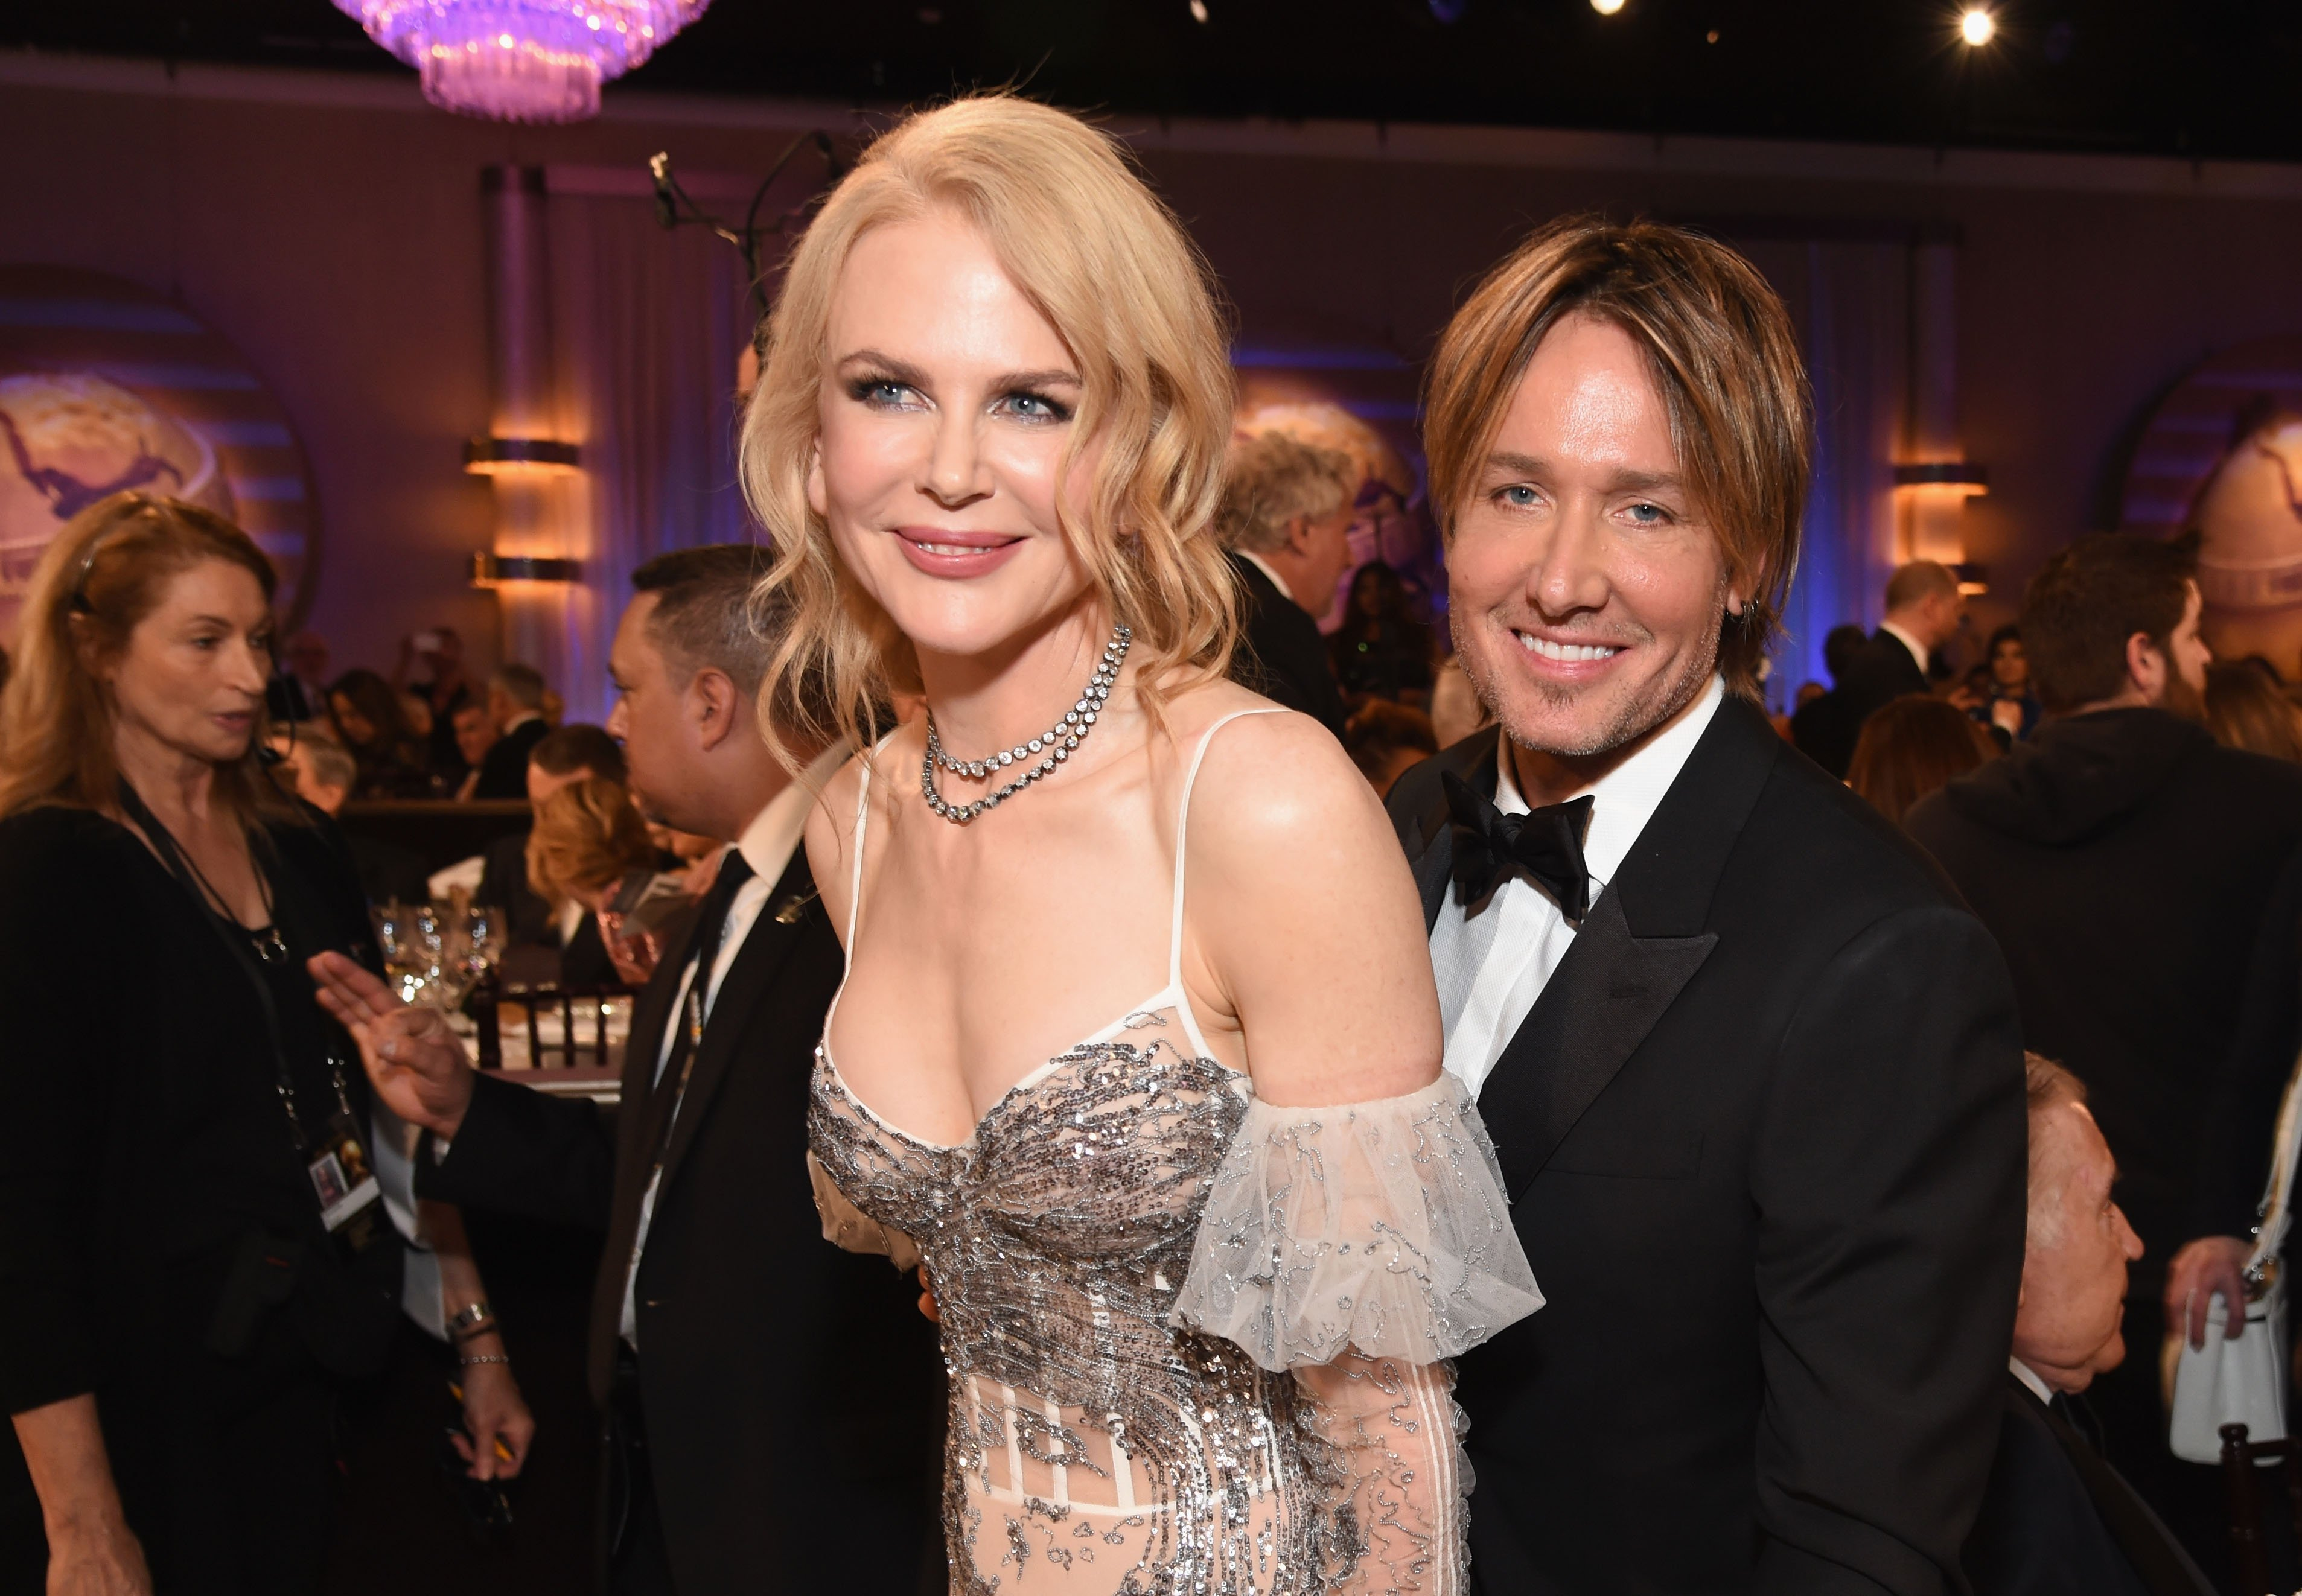 Nicole Kidman & Keith Urban at the 74th Annual Golden Globe Awards on Jan. 8, 2017 in California | Photo: Getty Images